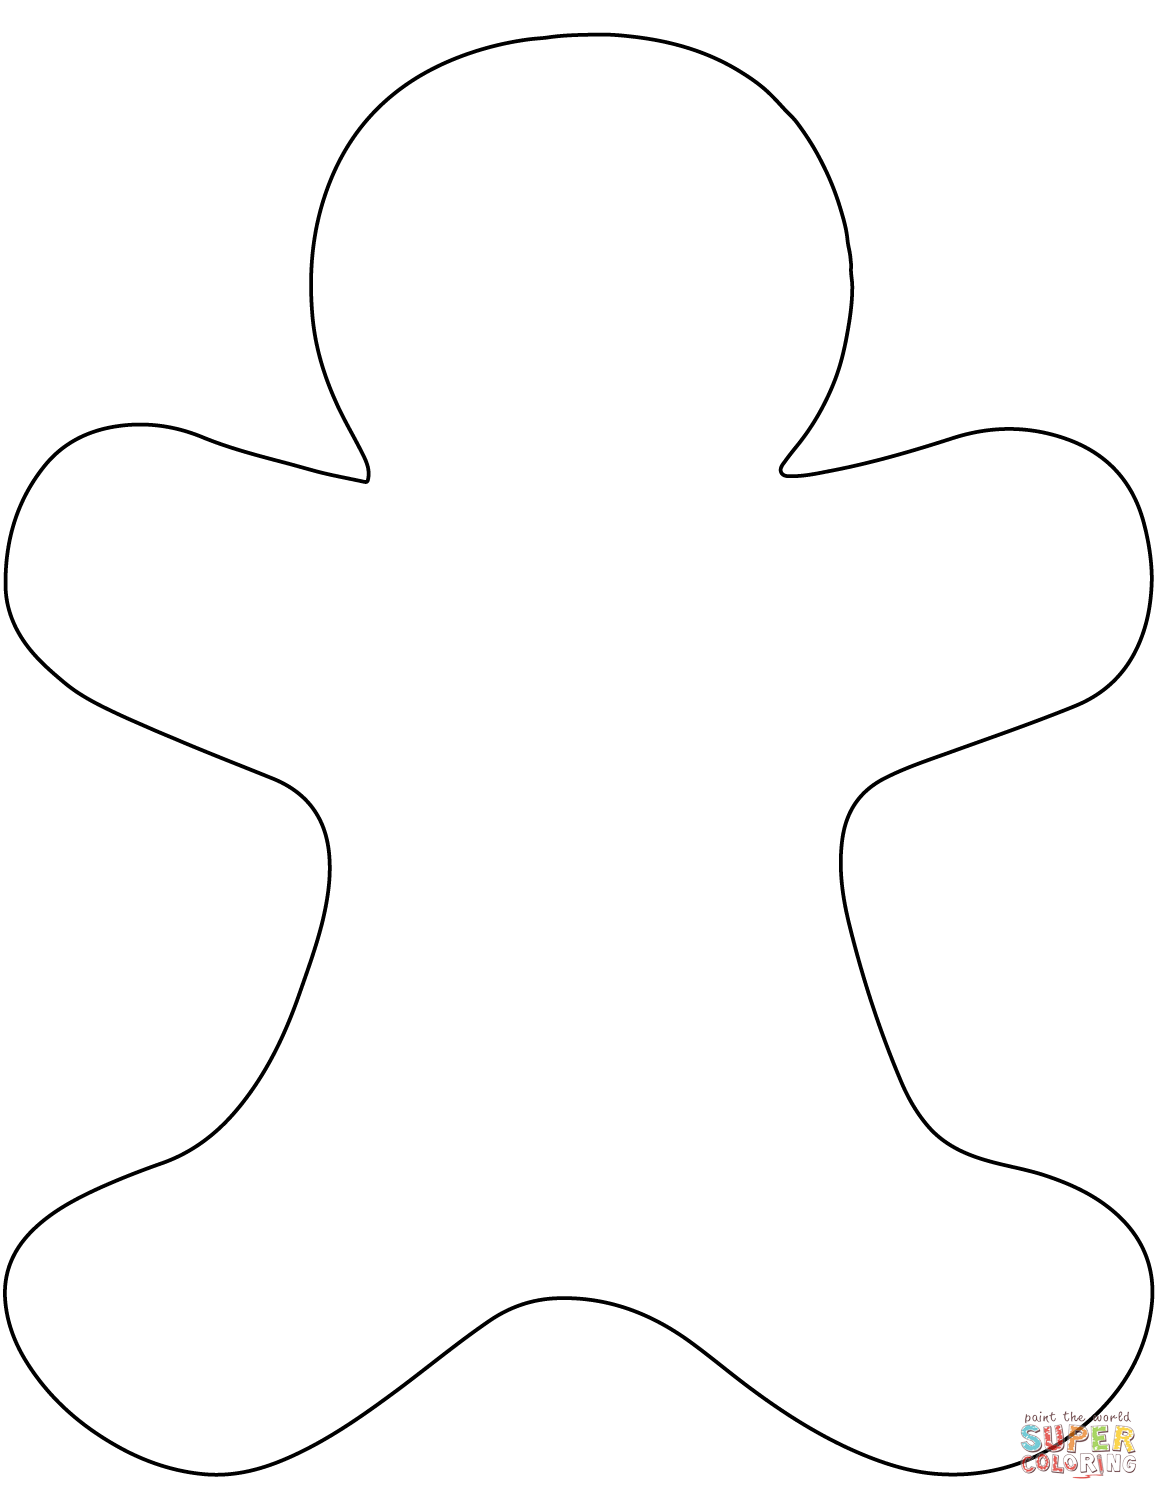 blank gingerbread man coloring page blank gingerbread man coloring page print color fun page man gingerbread blank coloring